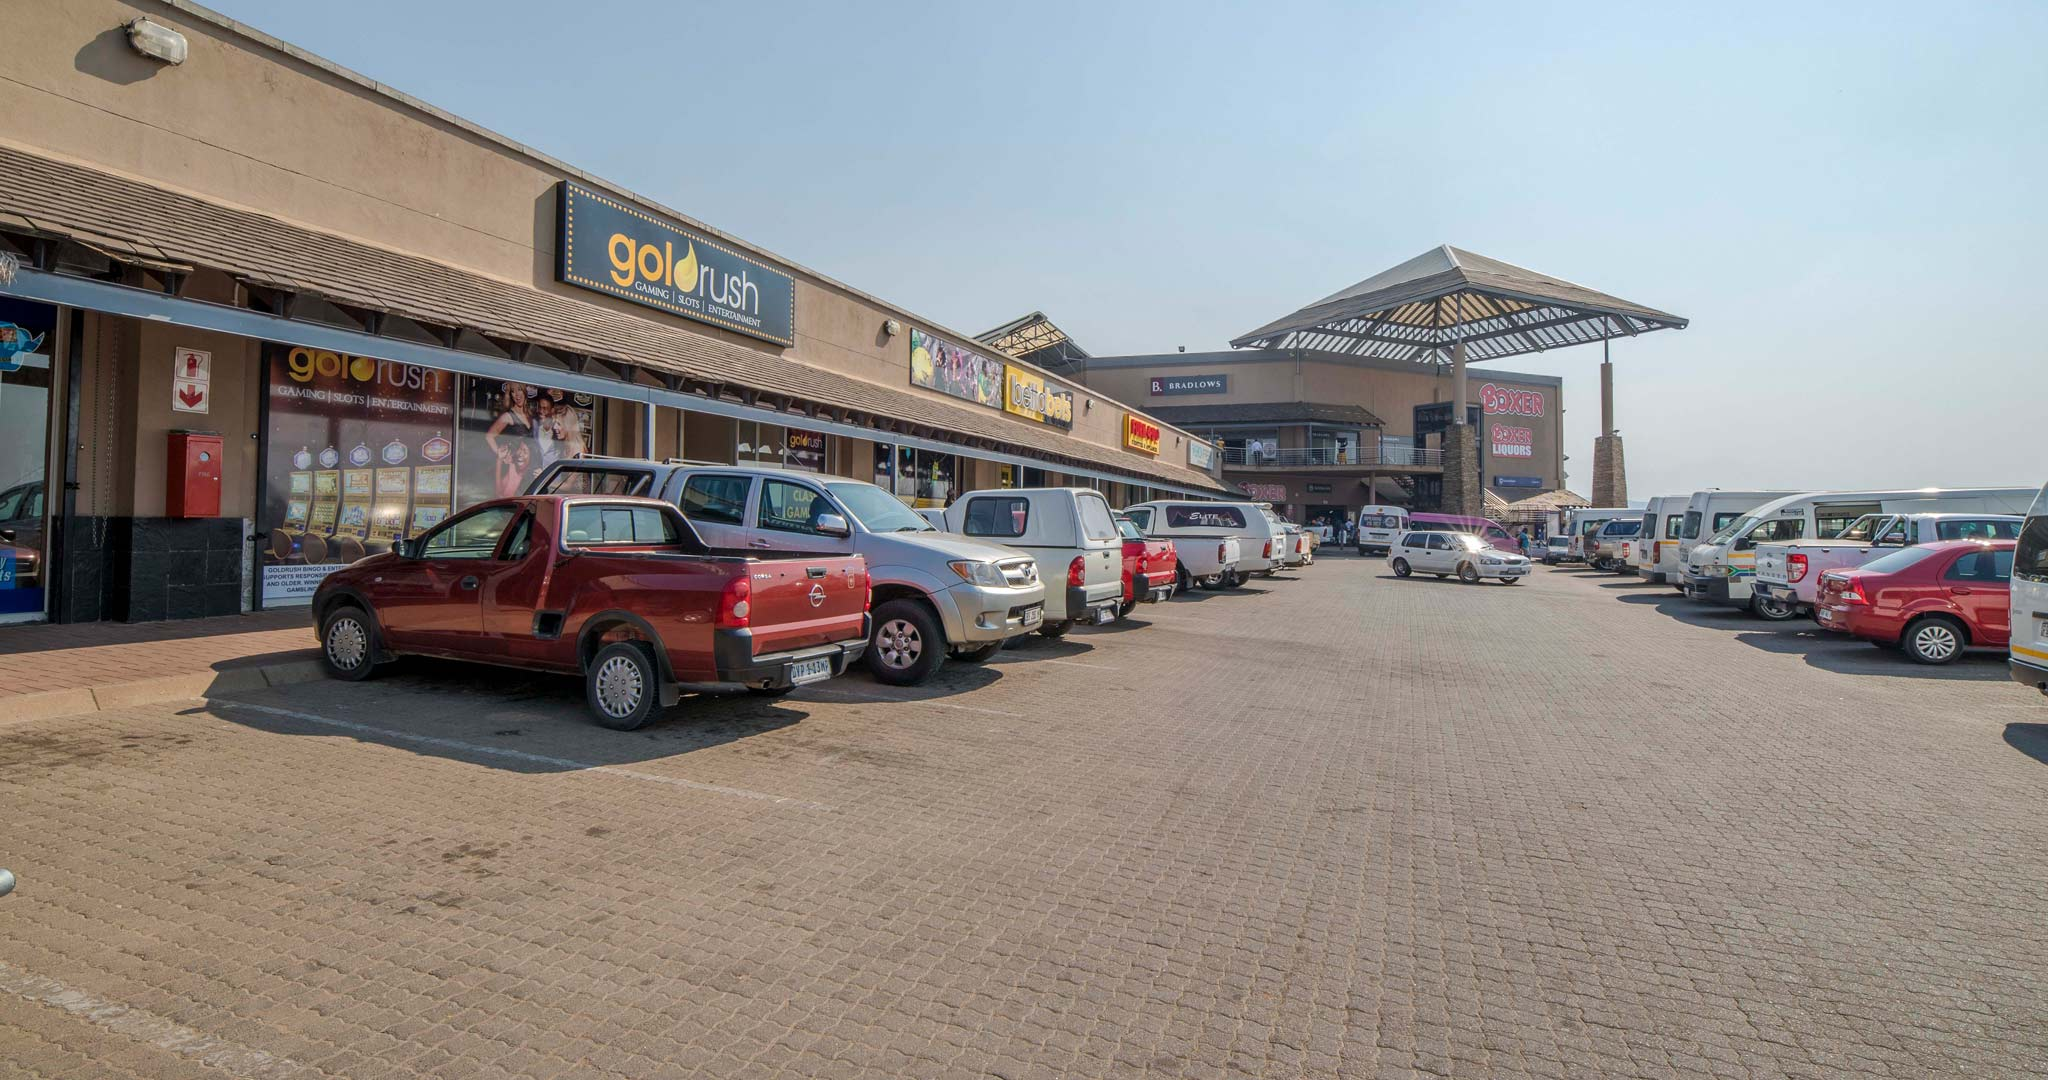 Bushbuck Ridge Mall